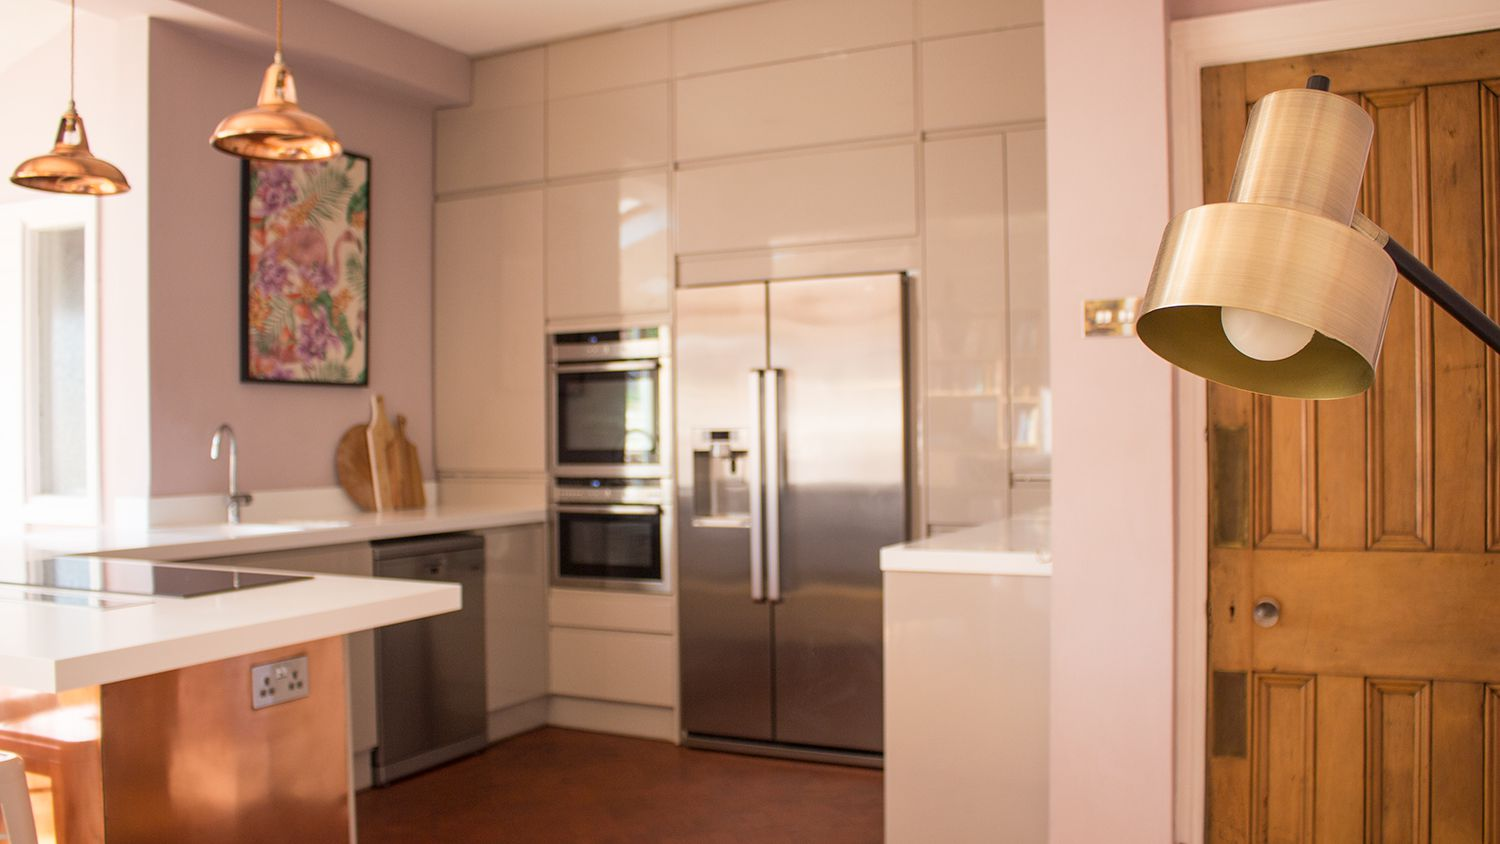 A photo of the kitchen area with light grey cabinets, white Corian worktops and a floor lamp in the foreground.